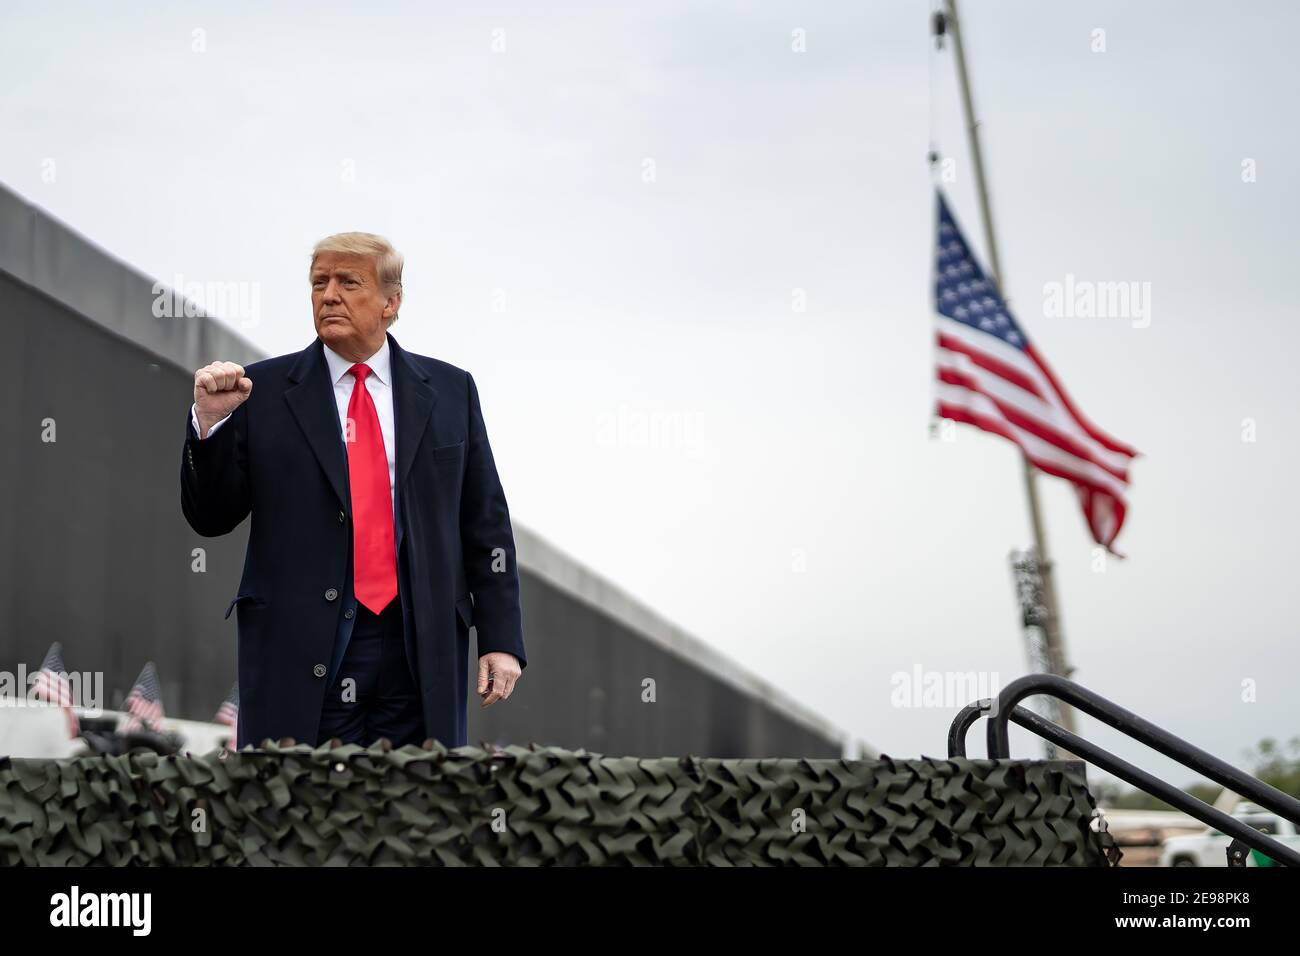 "PRESIDENT DONALD TRUMP VISITS THE BORDER WALL WITH MEXICO DURING THE LAST DAYS OF HIS PRESIDENCY. The Mexico–United States barrier, also known as the border wall, is a series of vertical barriers along the Mexico–United States border intended to reduce illegal immigration to the United States from Mexico. The barrier is not a continuous structure but a series of obstructions variously classified as ""fences"" or ""walls"".  Between the physical barriers, security is provided by a ""virtual fence"" of sensors, cameras, and other surveillance equipment. Stock Photo"